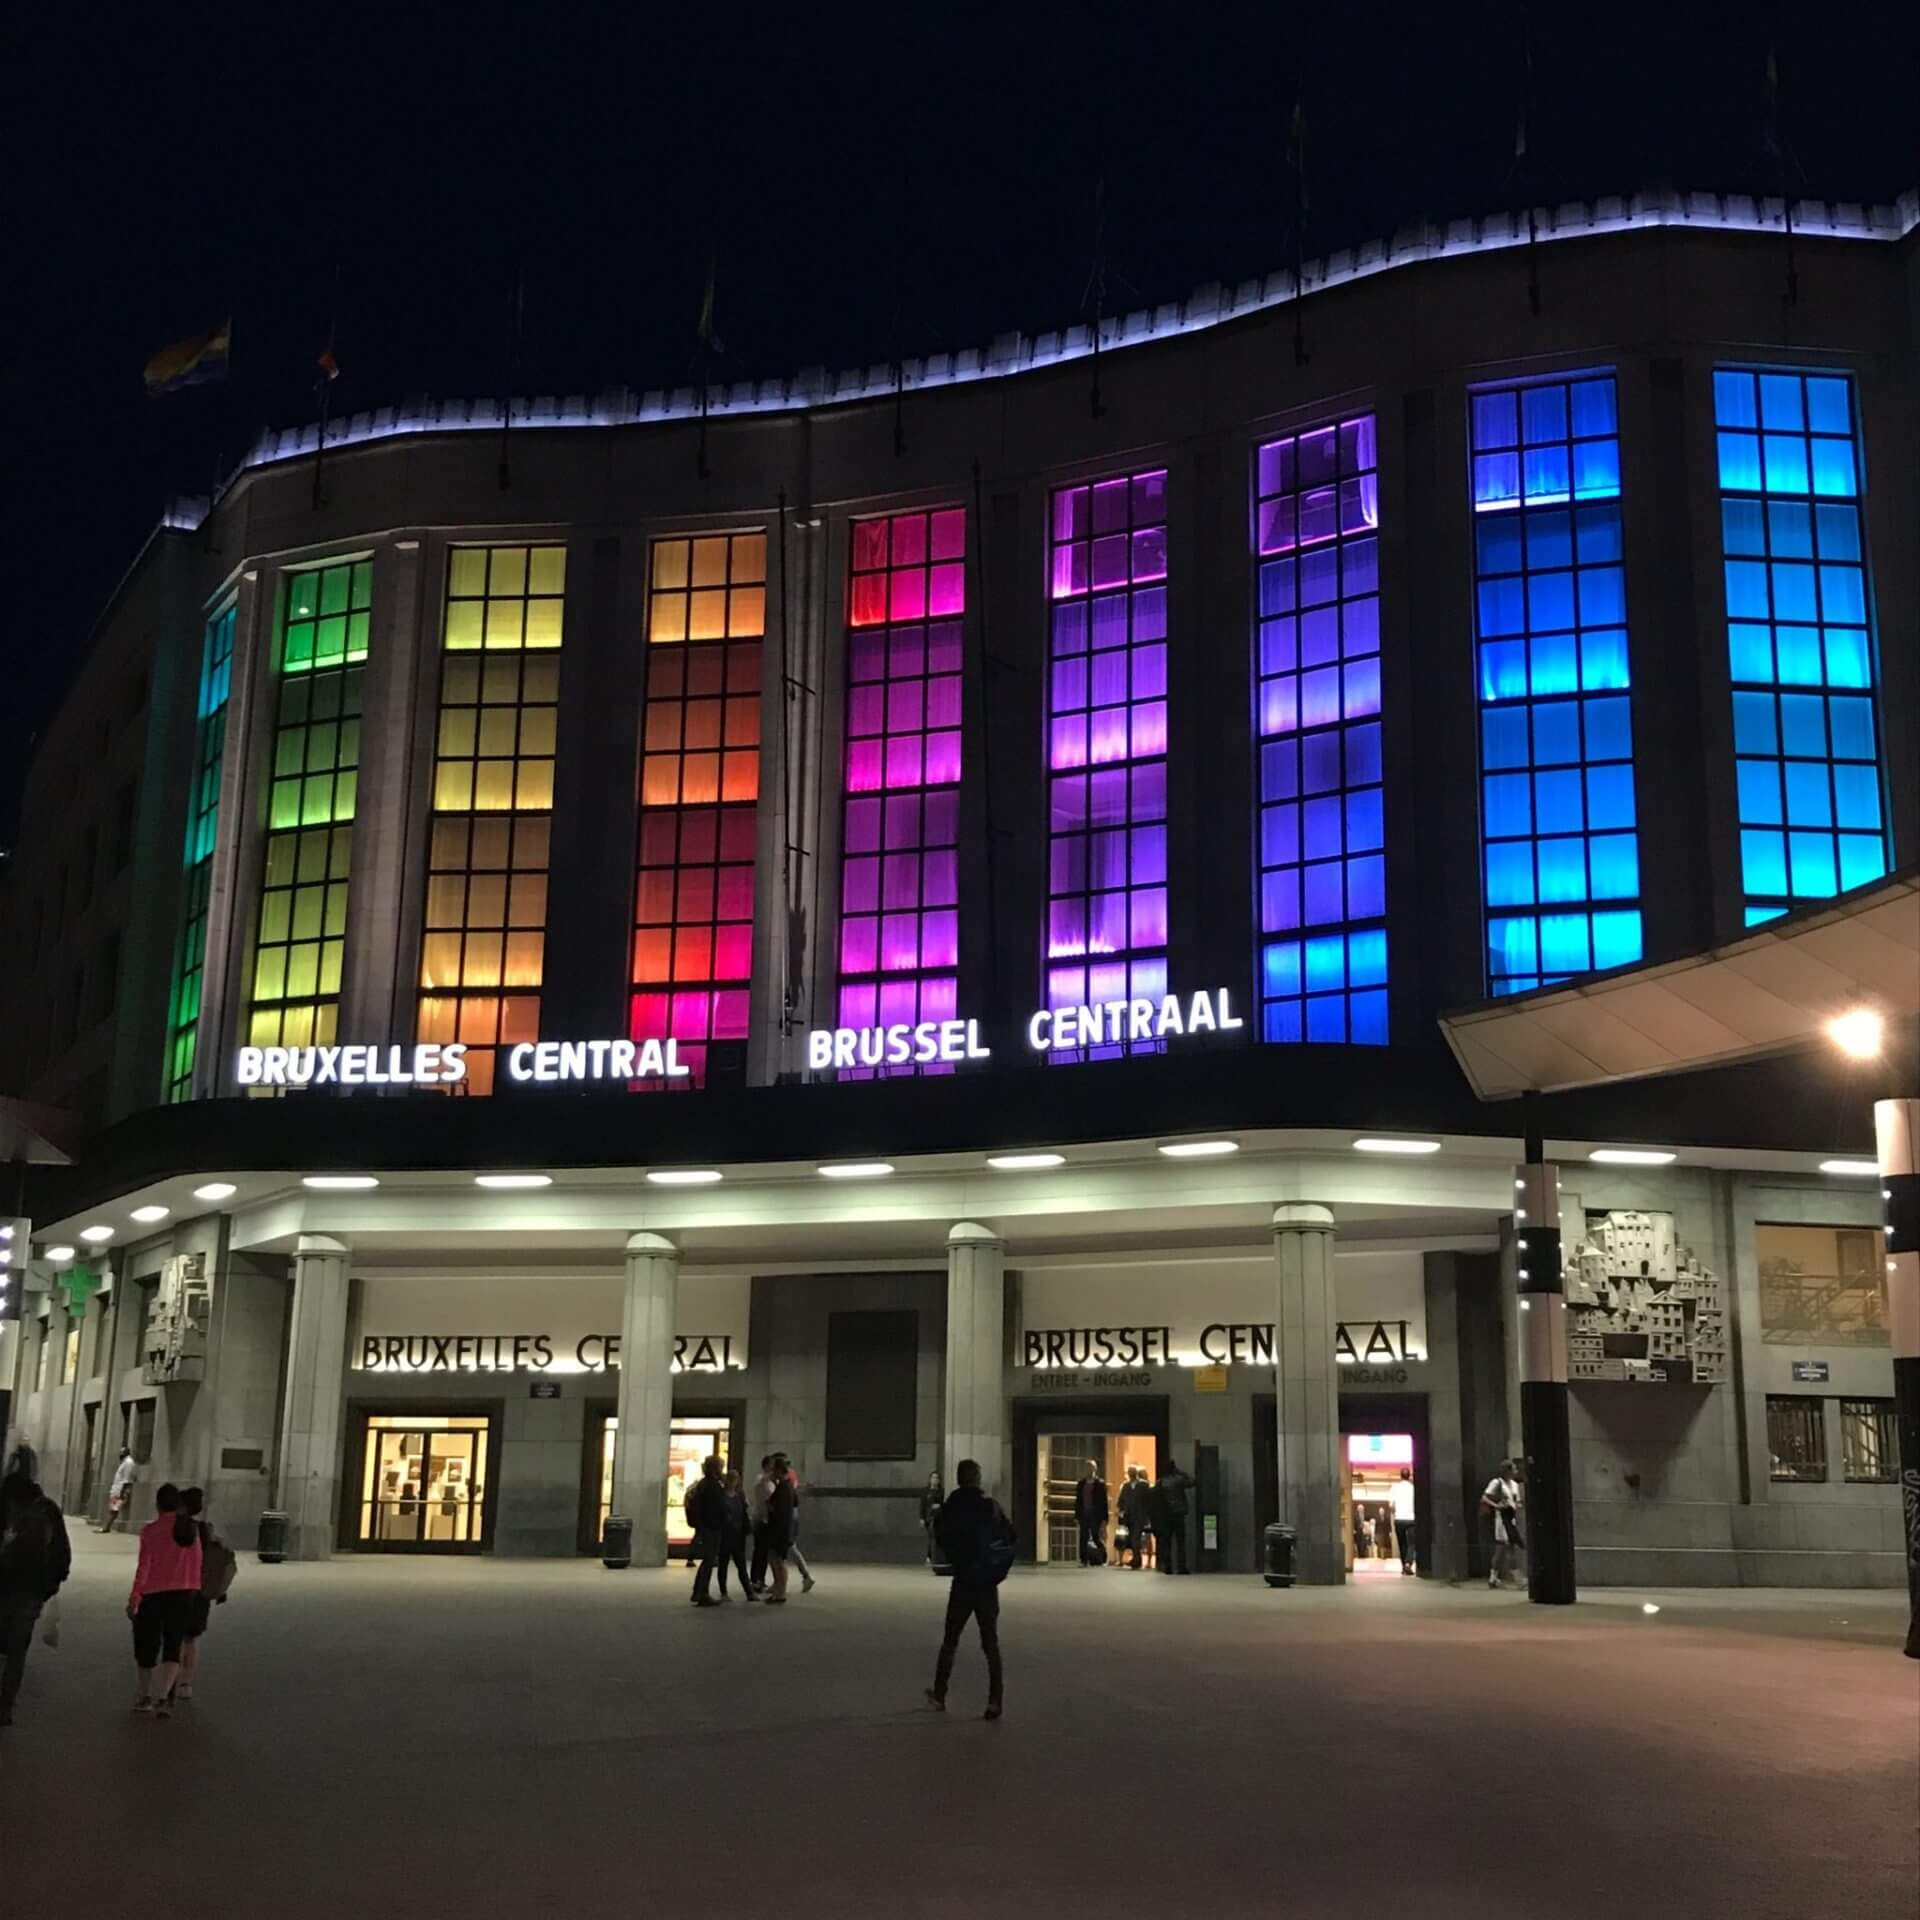 Pride-Centraal-Station